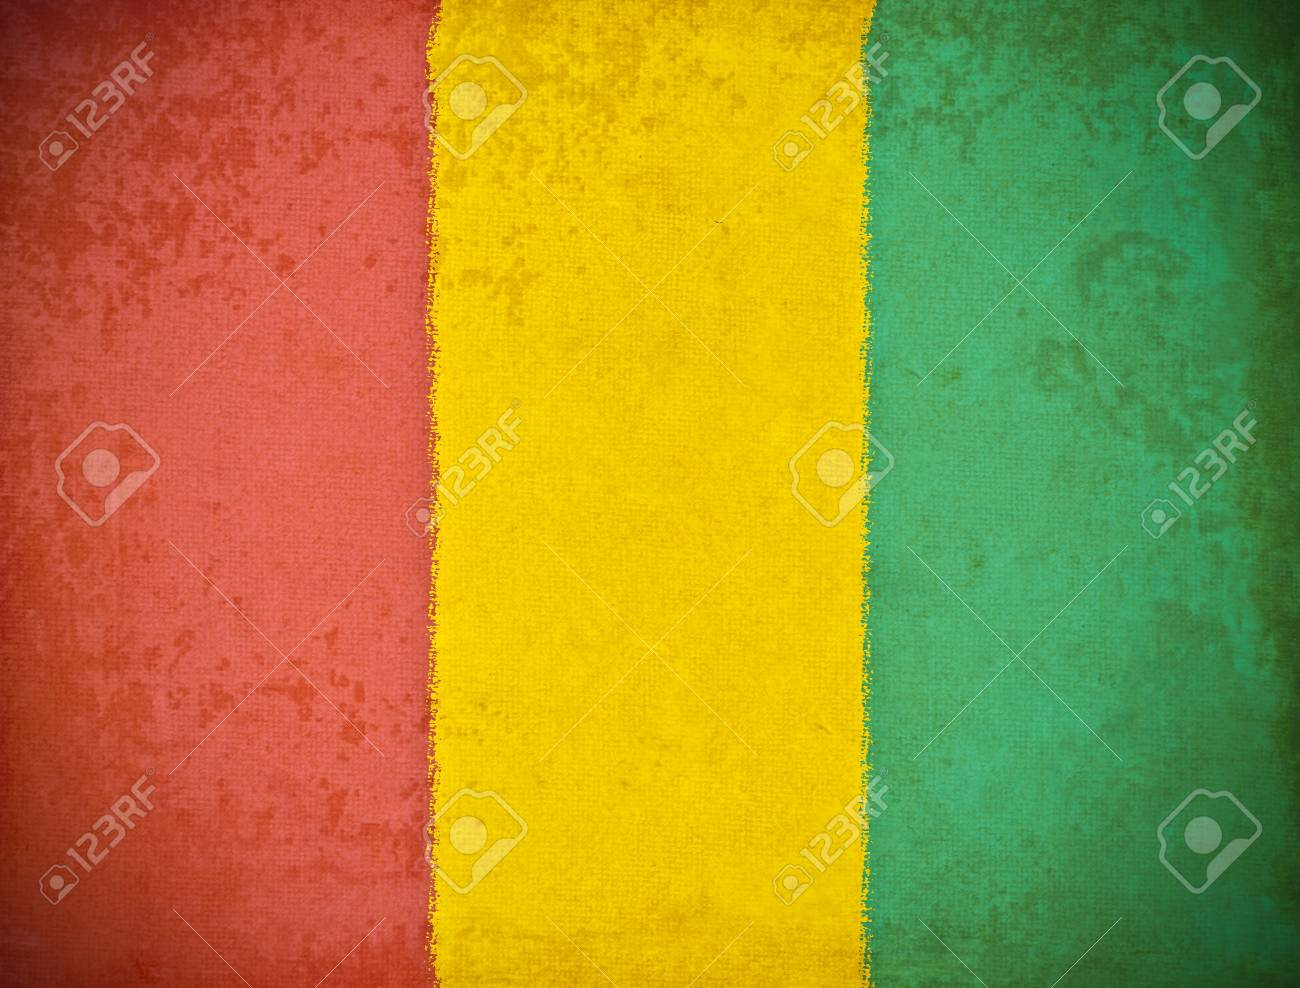 old grunge paper with Guinea flag background Stock Photo - 12545125